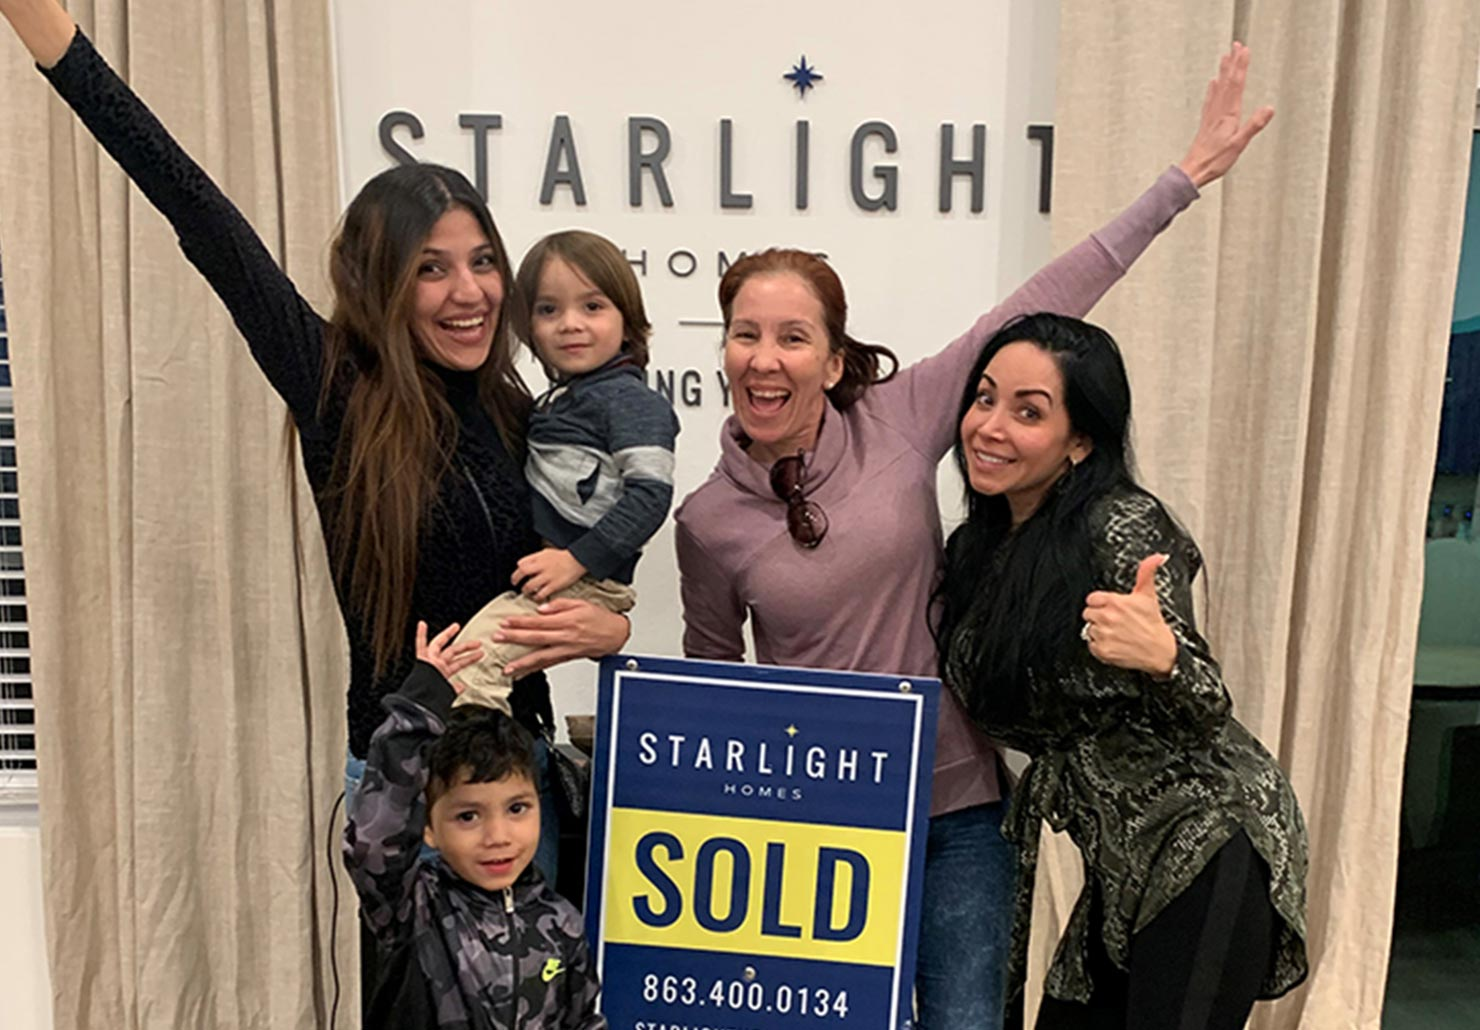 New Homes for Sale by Starlight Homes